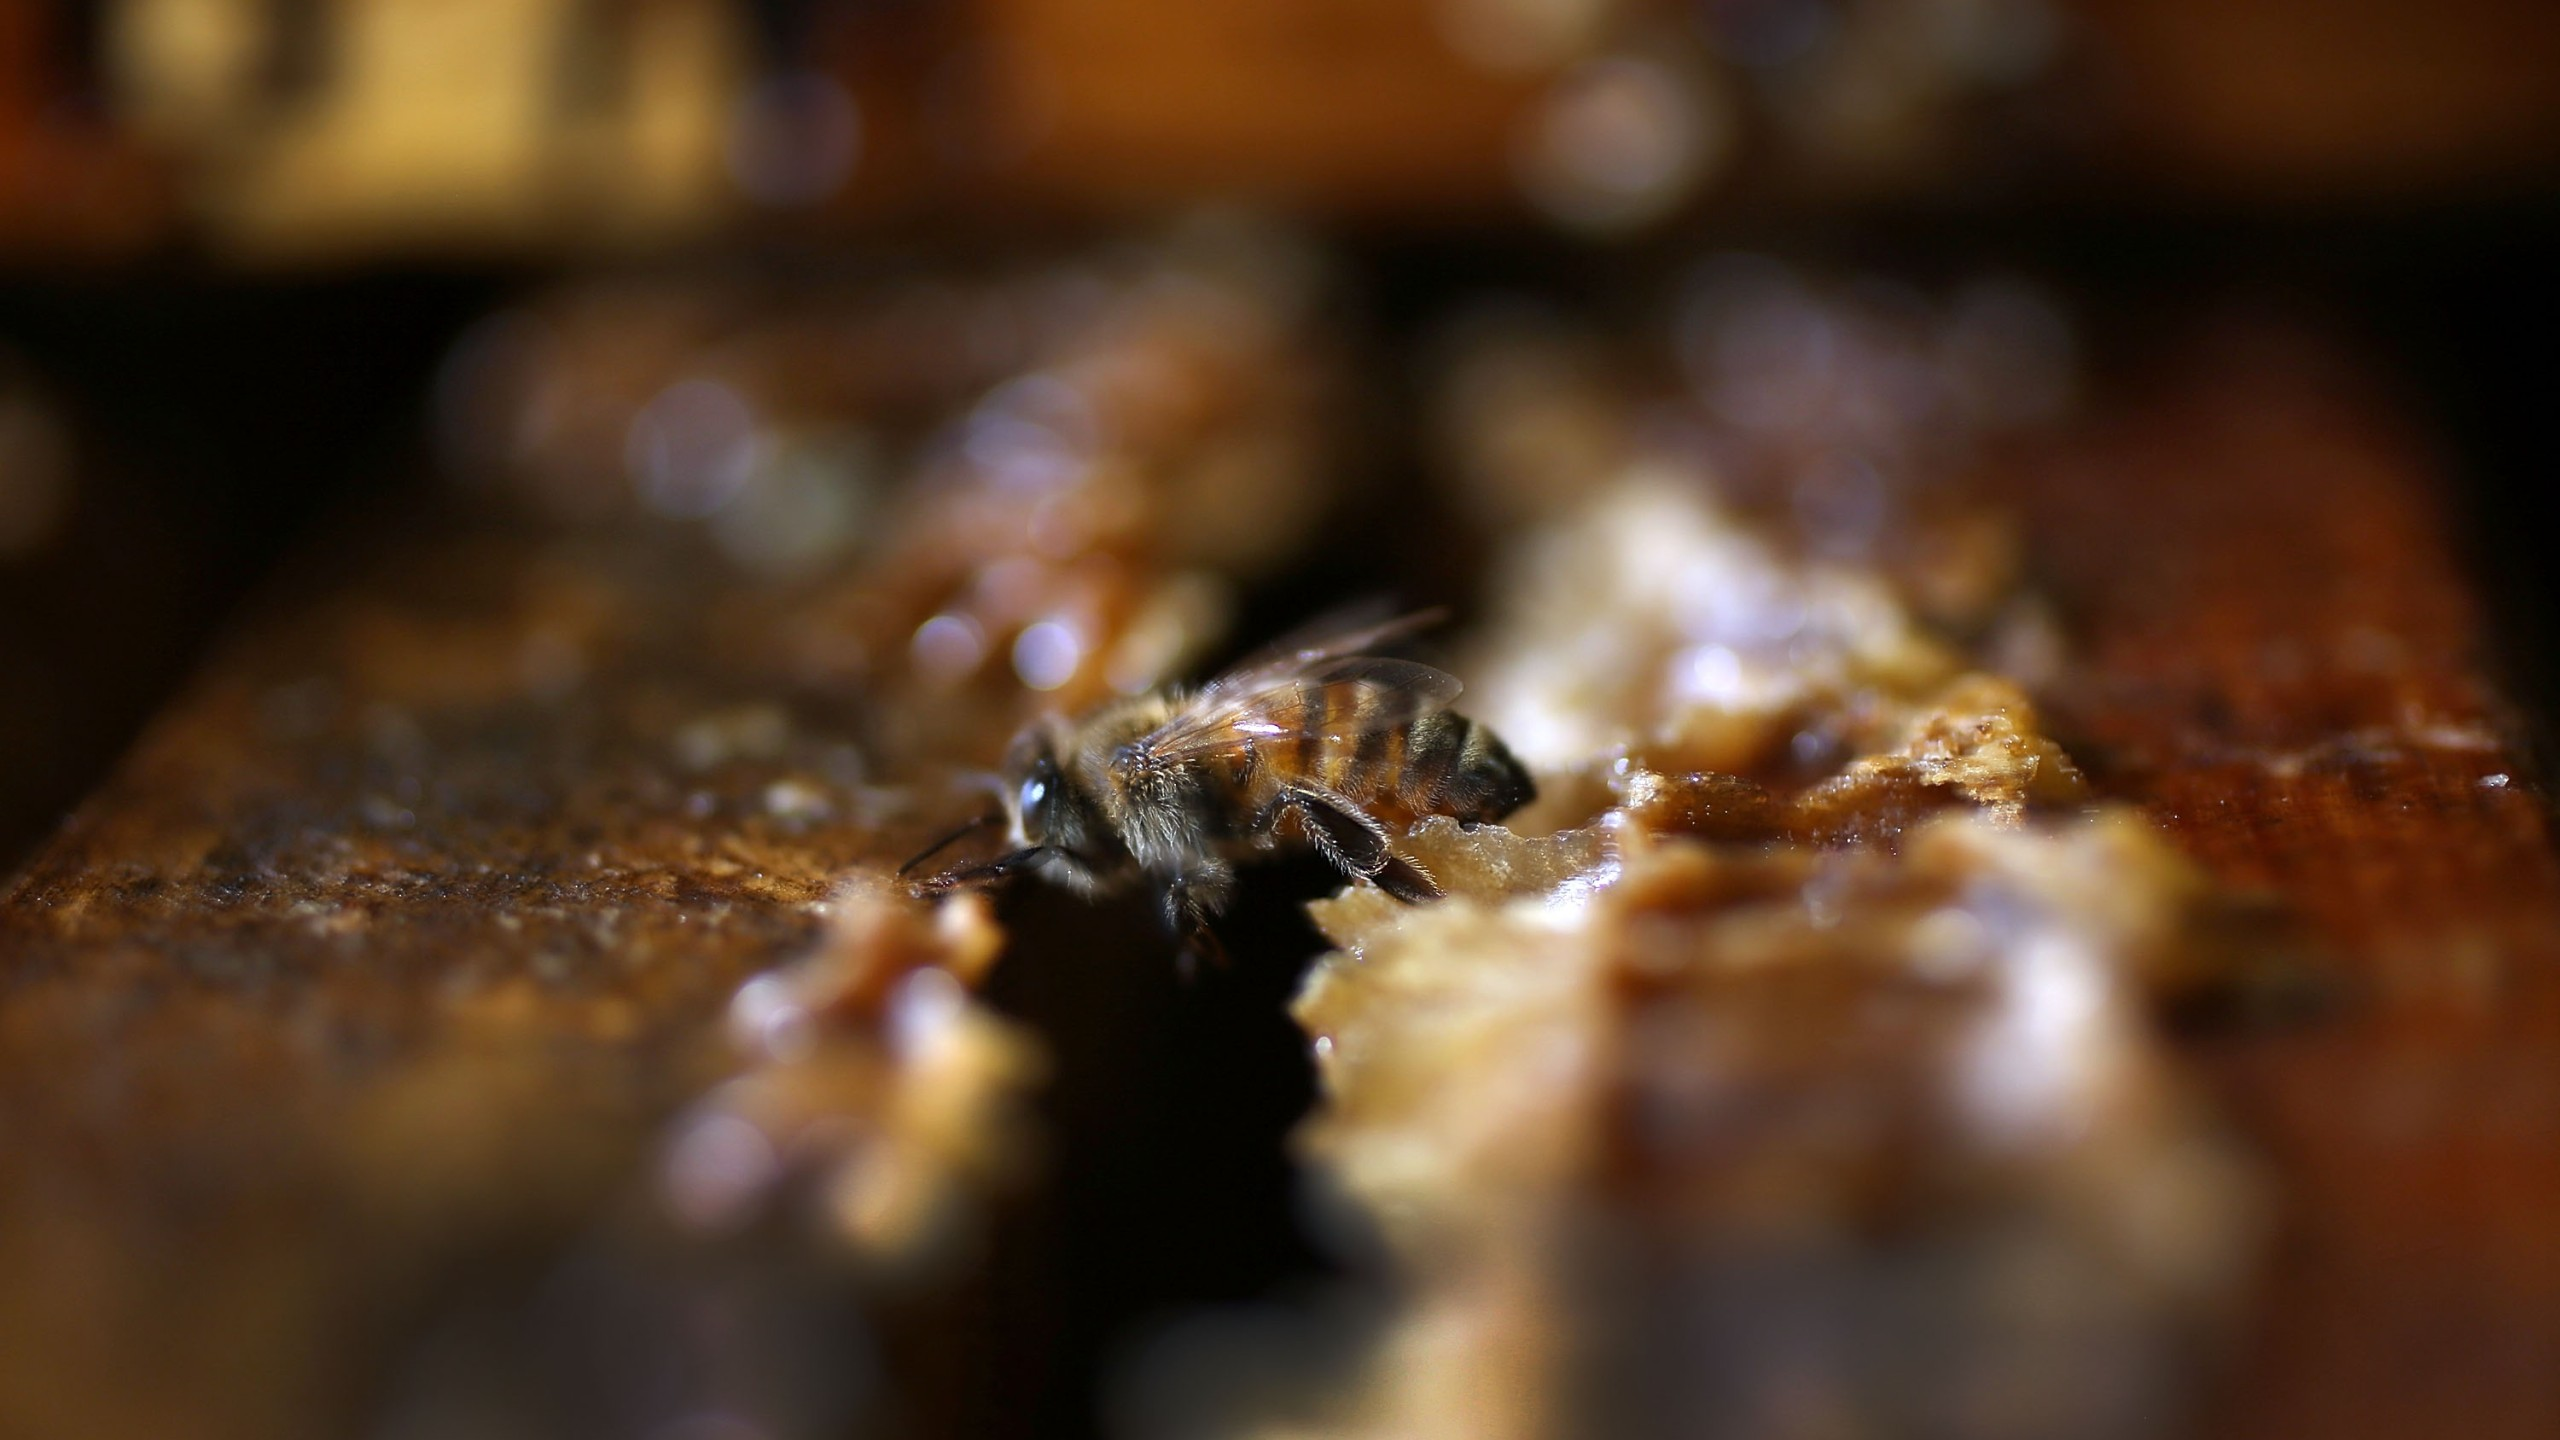 A honeybee is seen at the J & P Apiary and Gentzel's Bees, a honey and pollination company in Homestead, Florida, on May 19, 2015. (Credit: Joe Raedle / Getty Images)